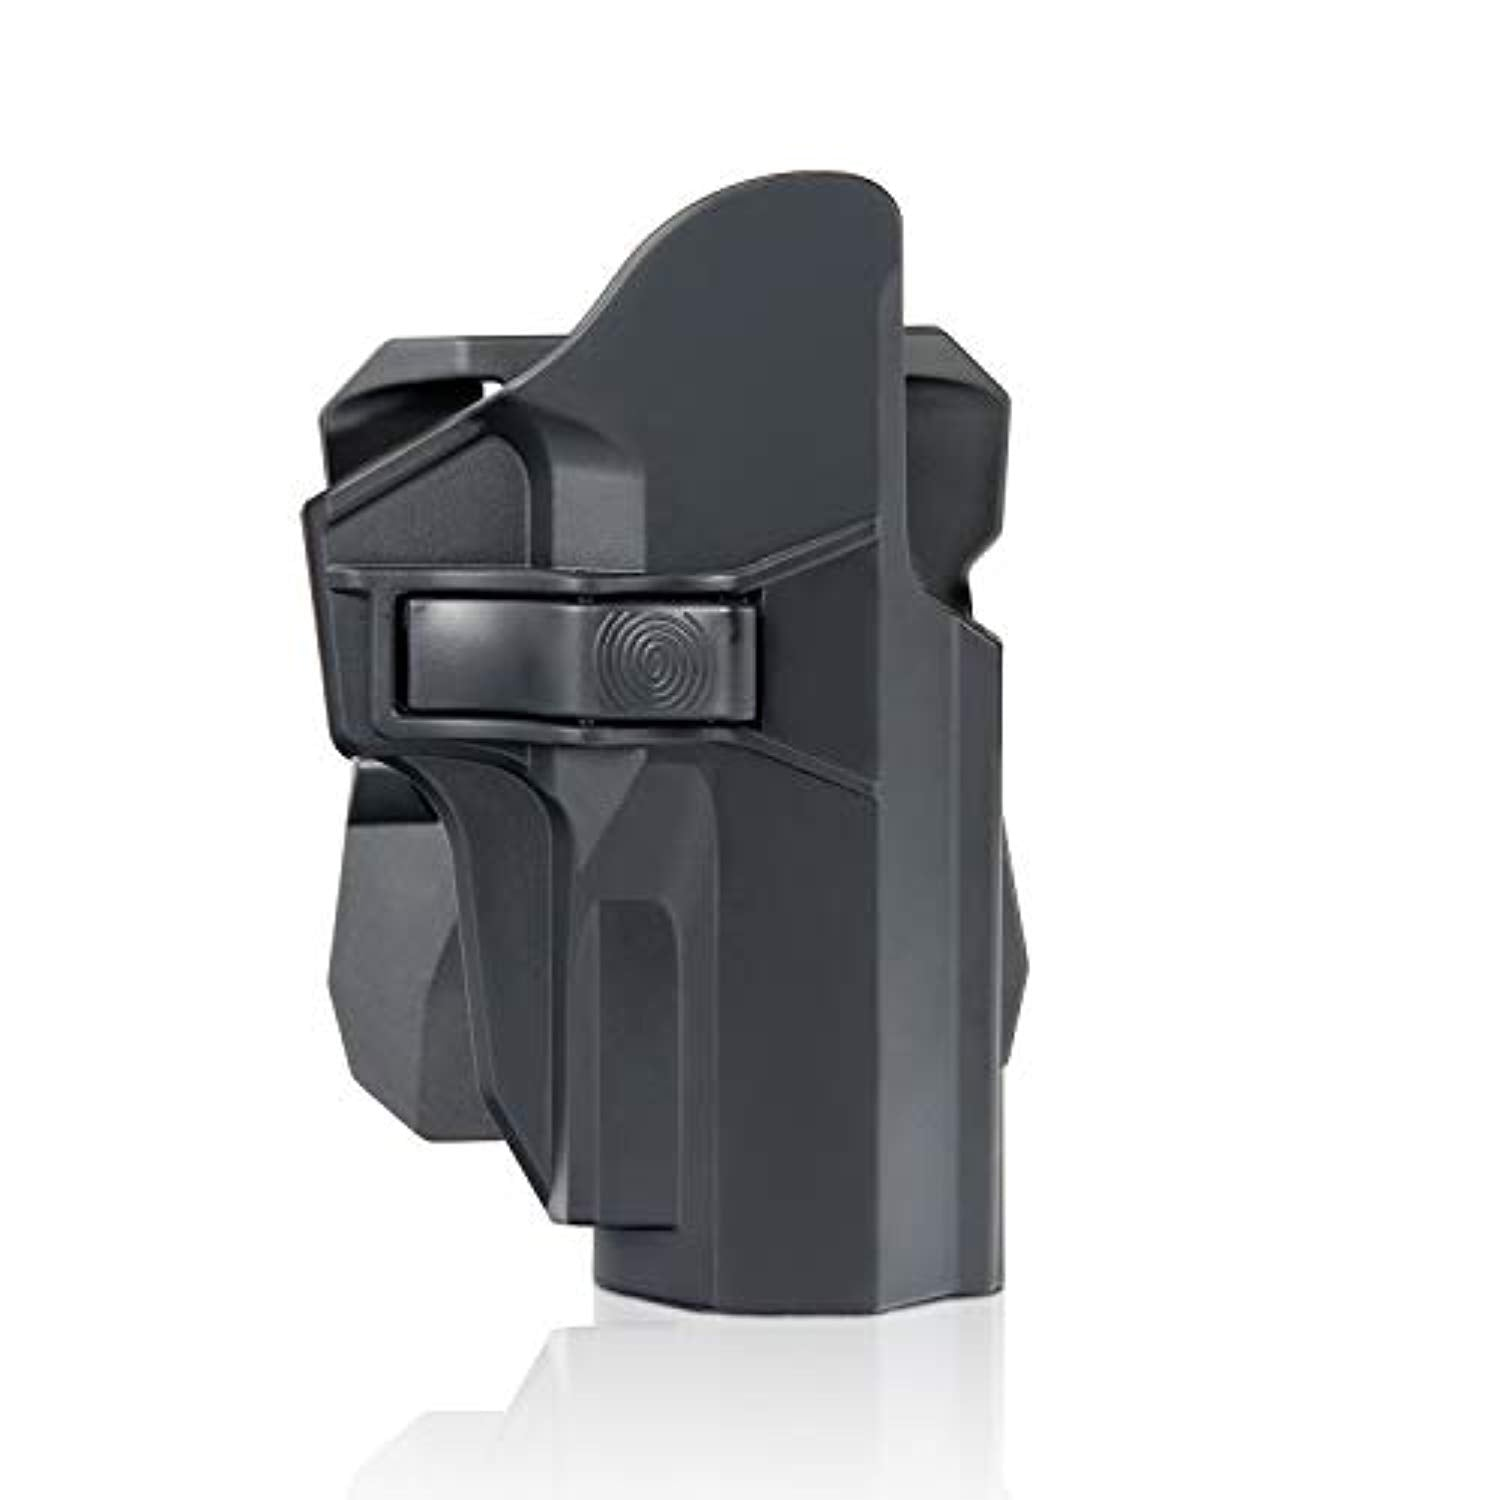 efluky Sig P226 P227 P228 P229 Holster with Two Options, 360° Auto-Adjusting Cant Polymer Trigger Release Tactical Pistol Holster, RH-Black